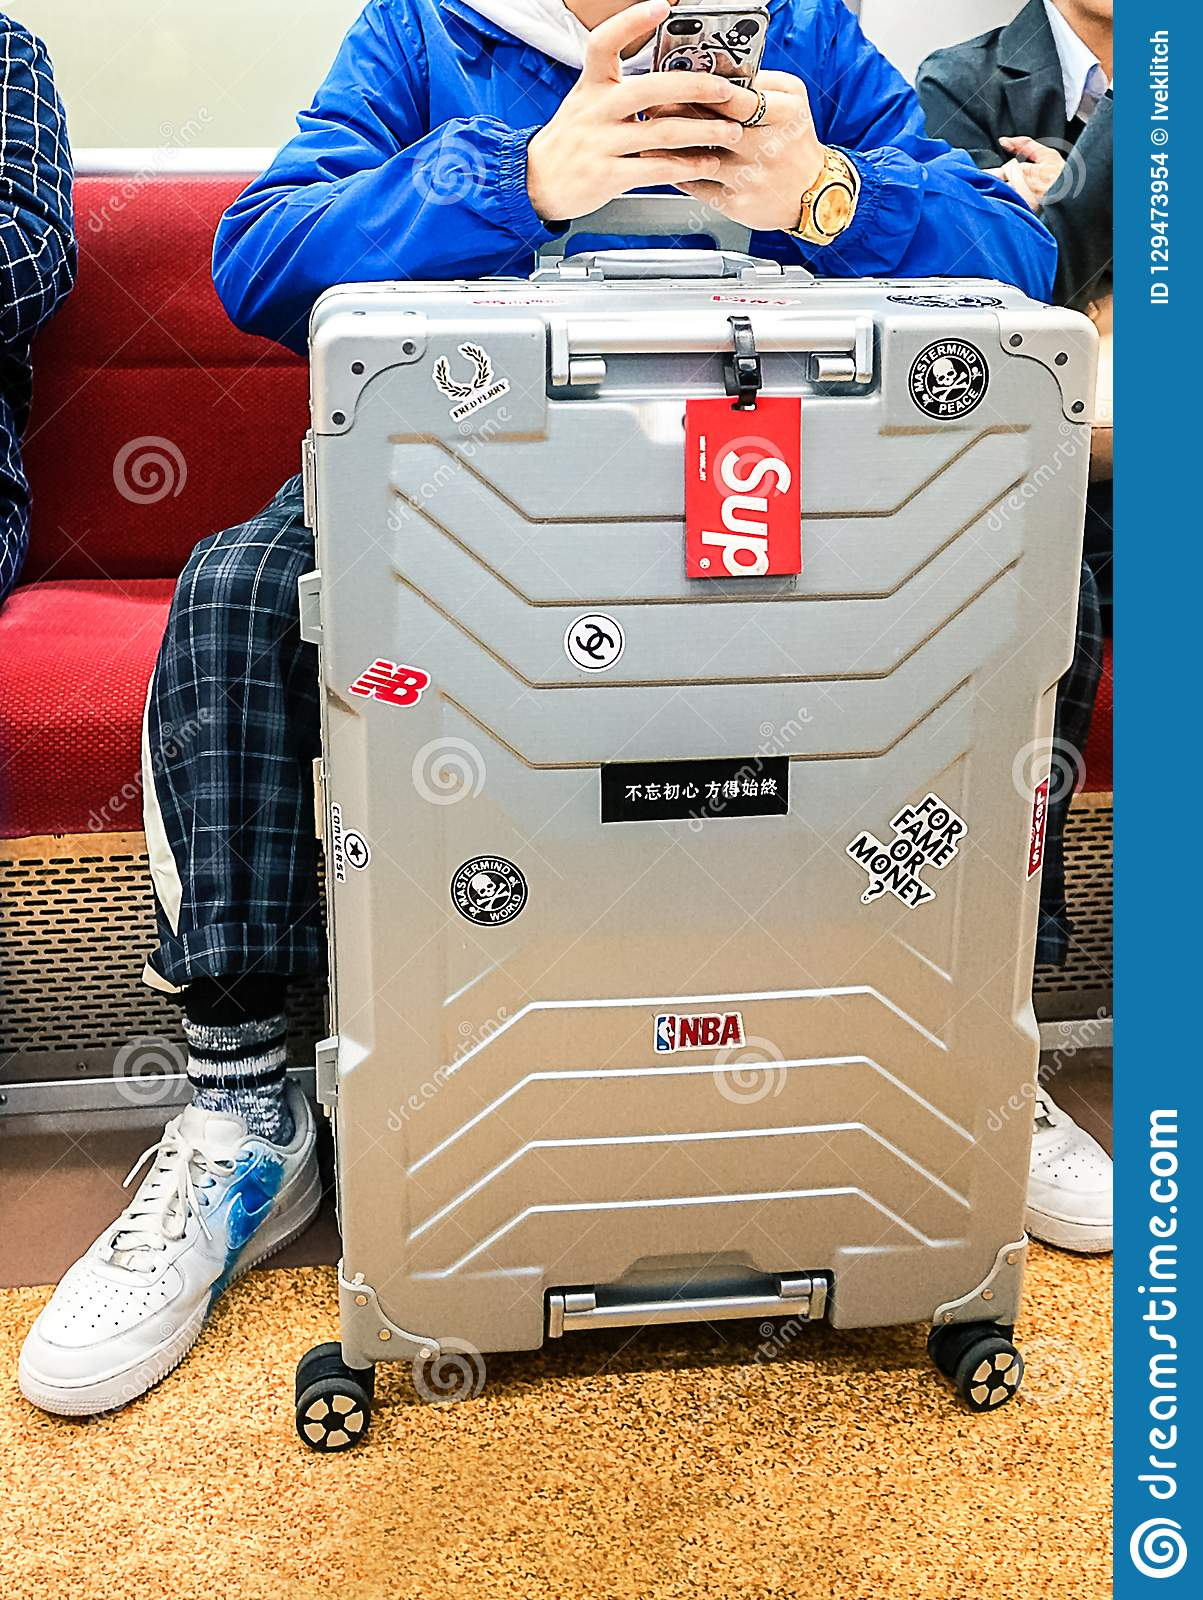 Tokyo, Japan 10.02.2018 bright stylish aluminum suitcase with stickers next to fashionably dressed young man sitting in subway